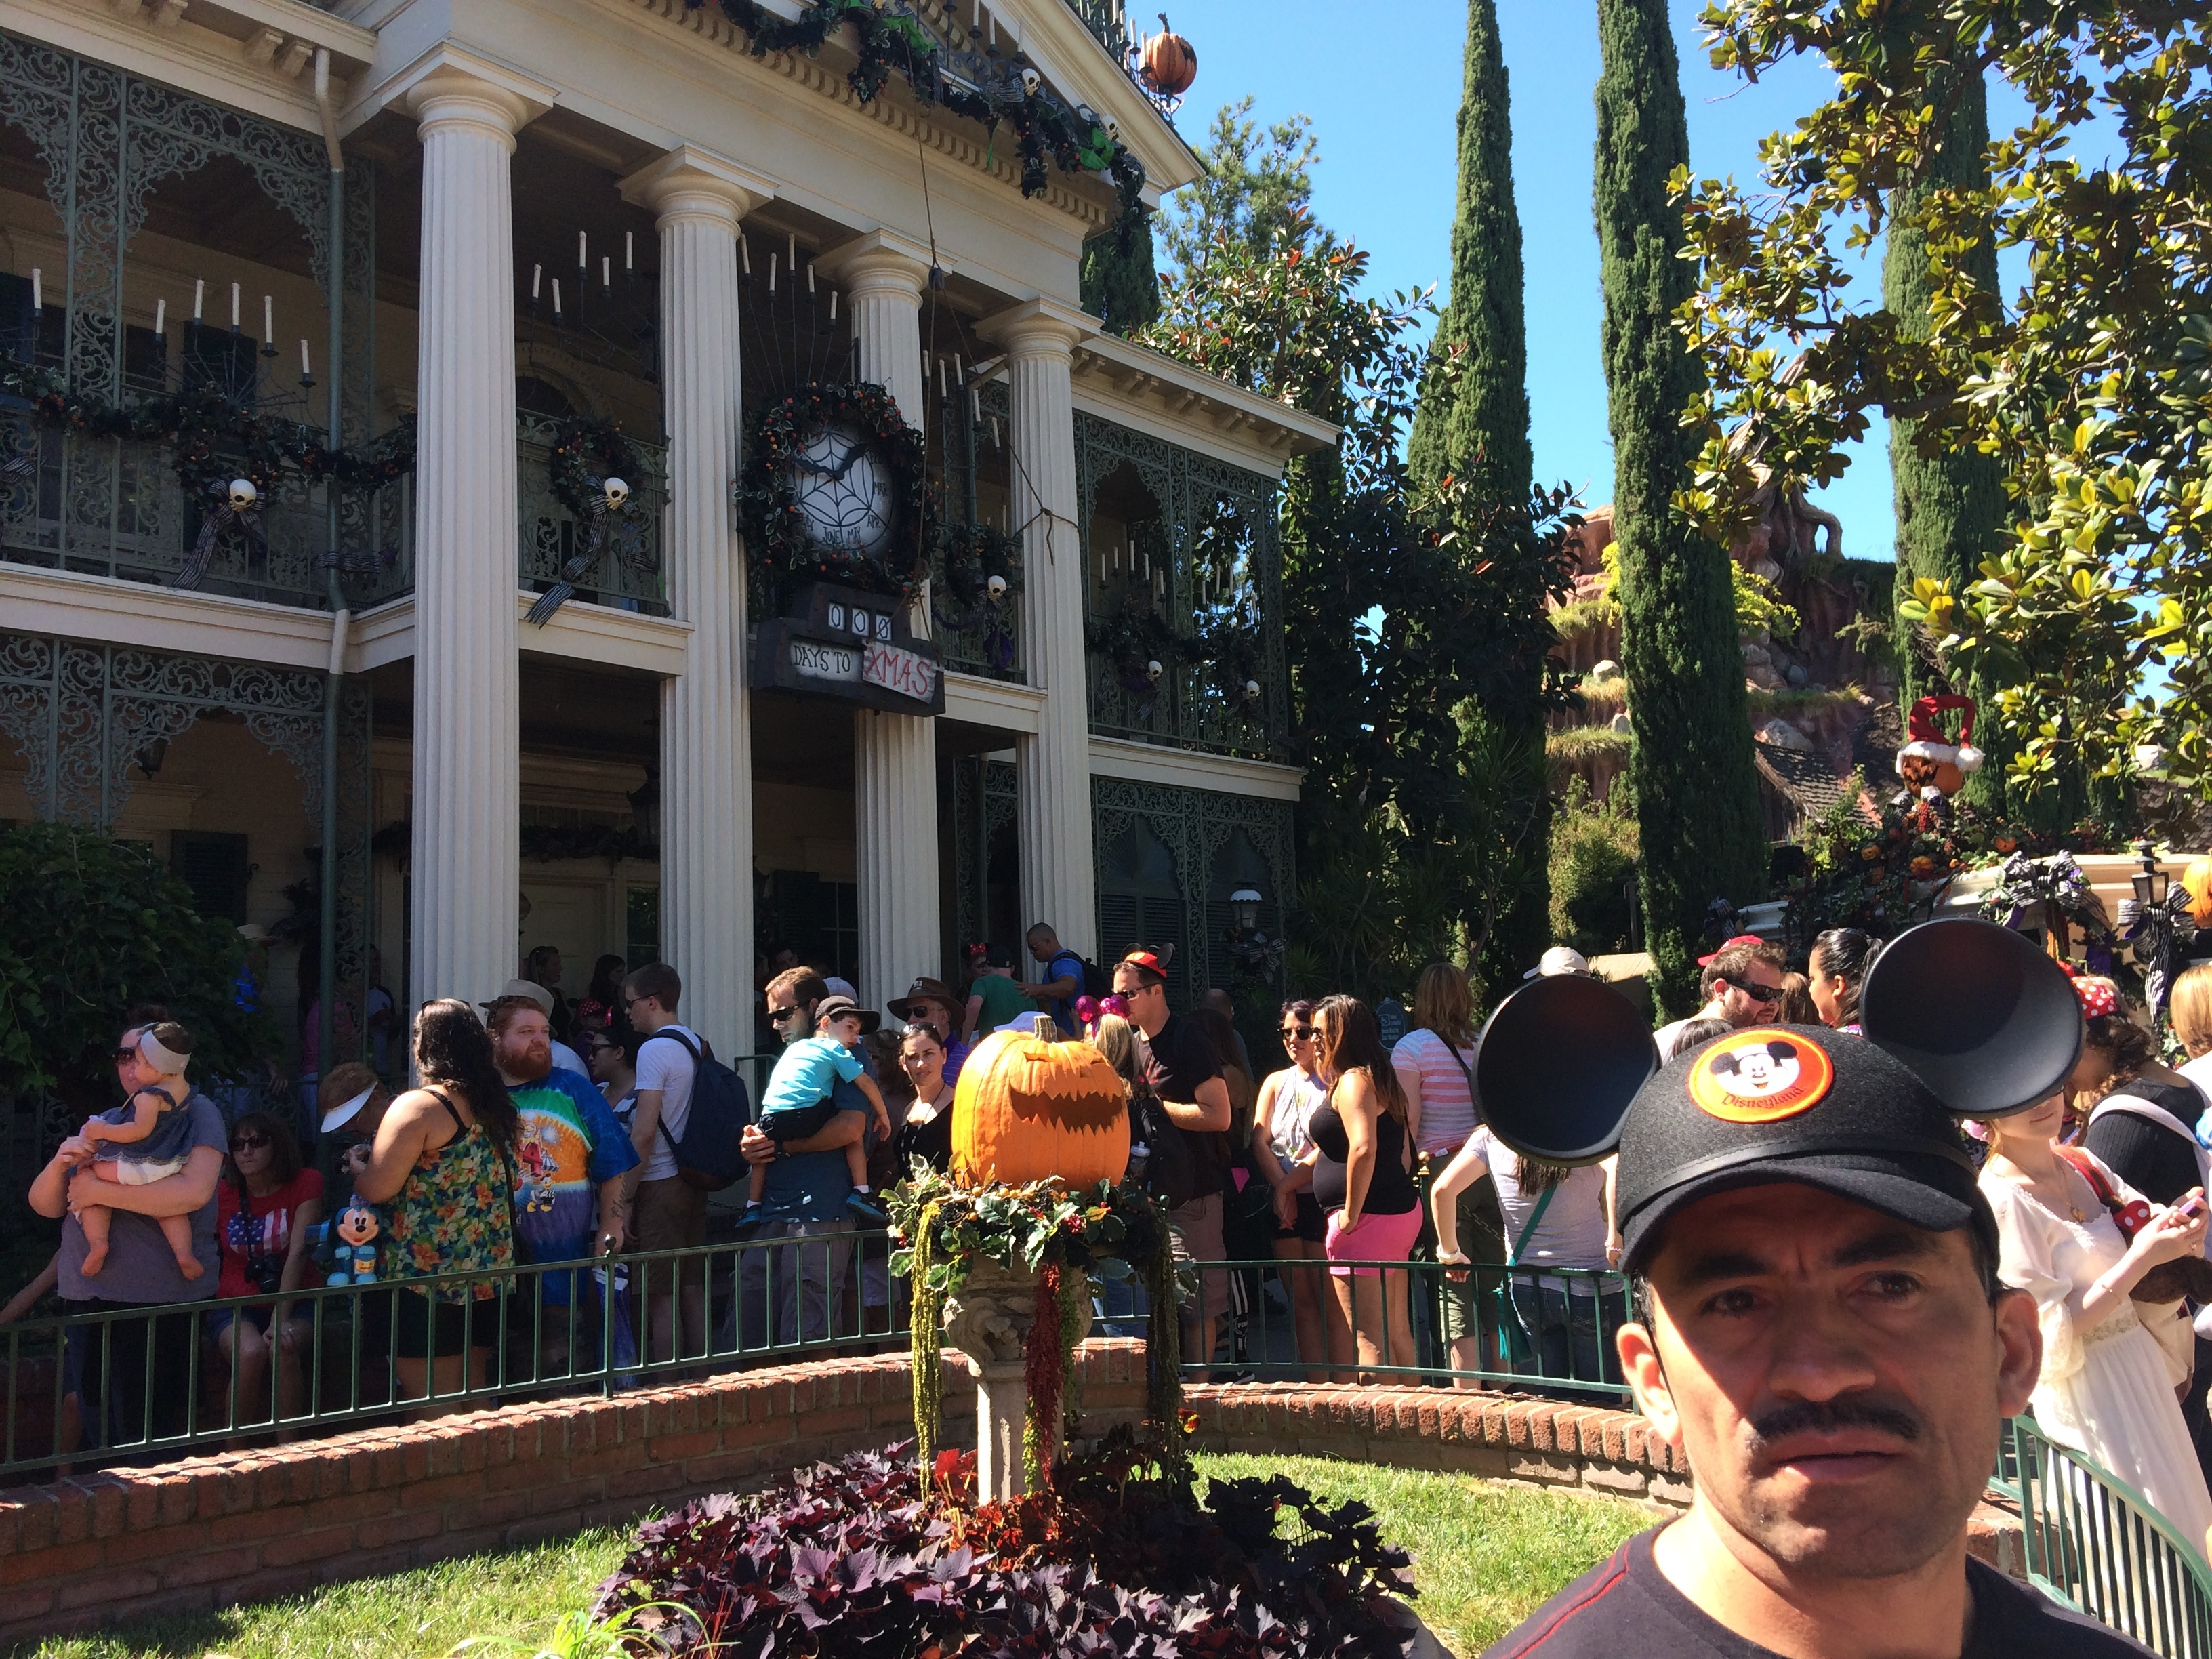 Ascención shows his fatigue while waiting to get into the Haunted Mansion